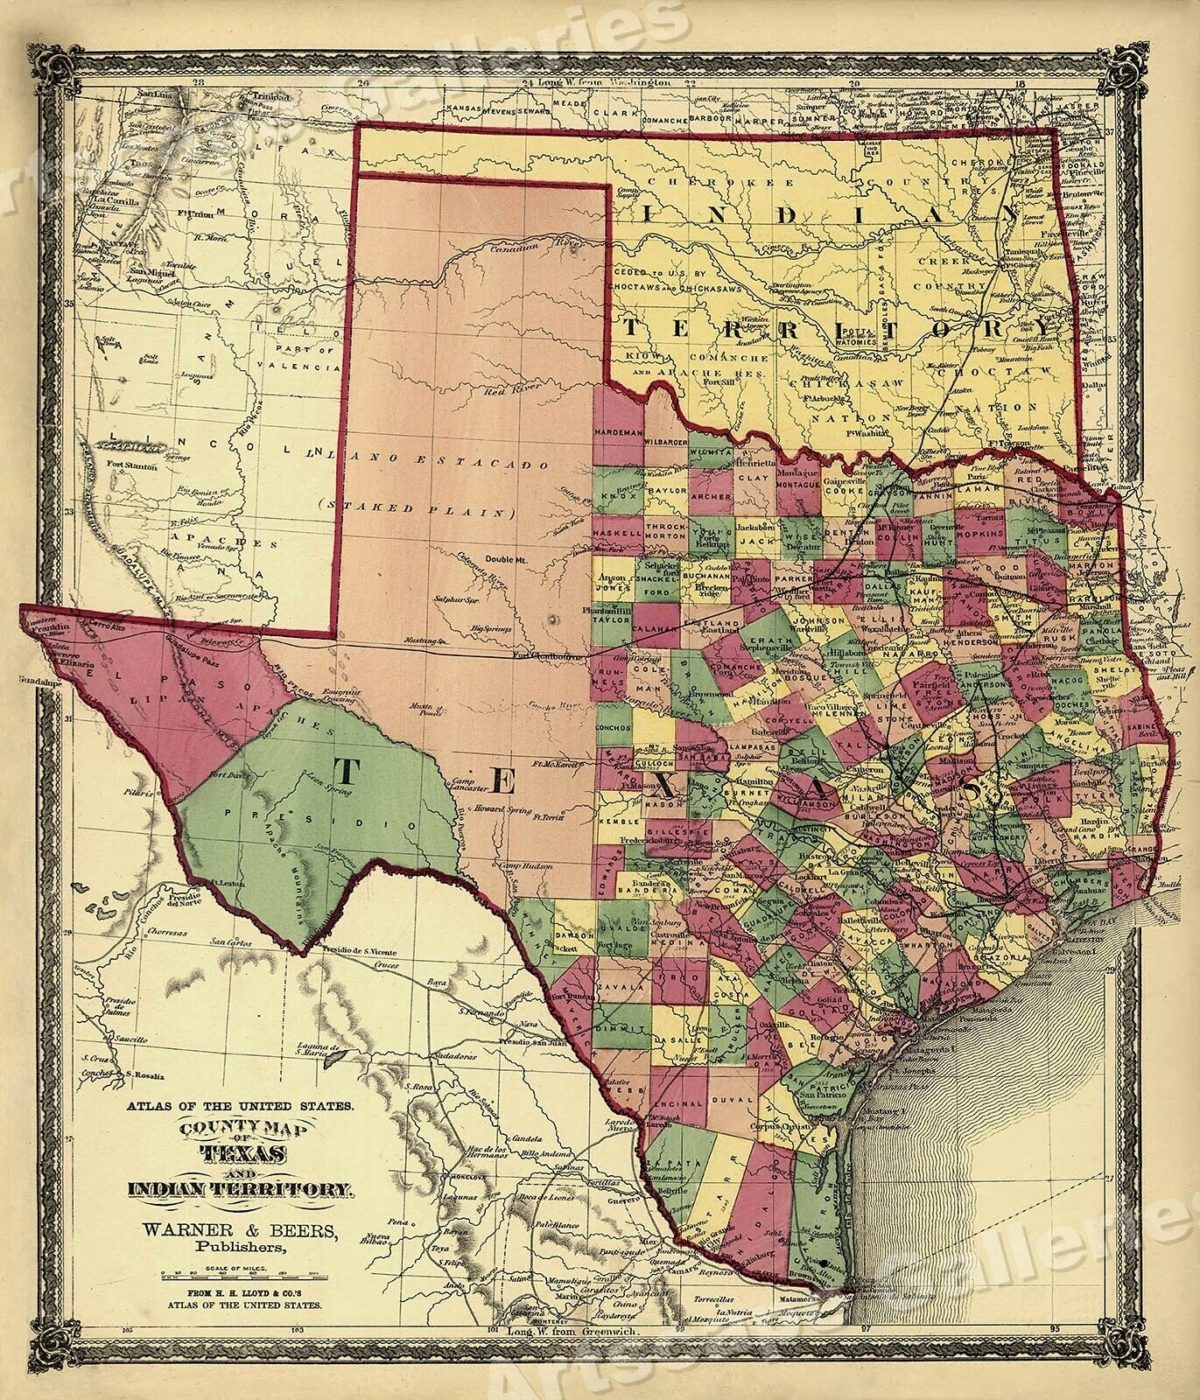 1870s Map of State of Texas and Oklahoma Indian Territory - 24x28